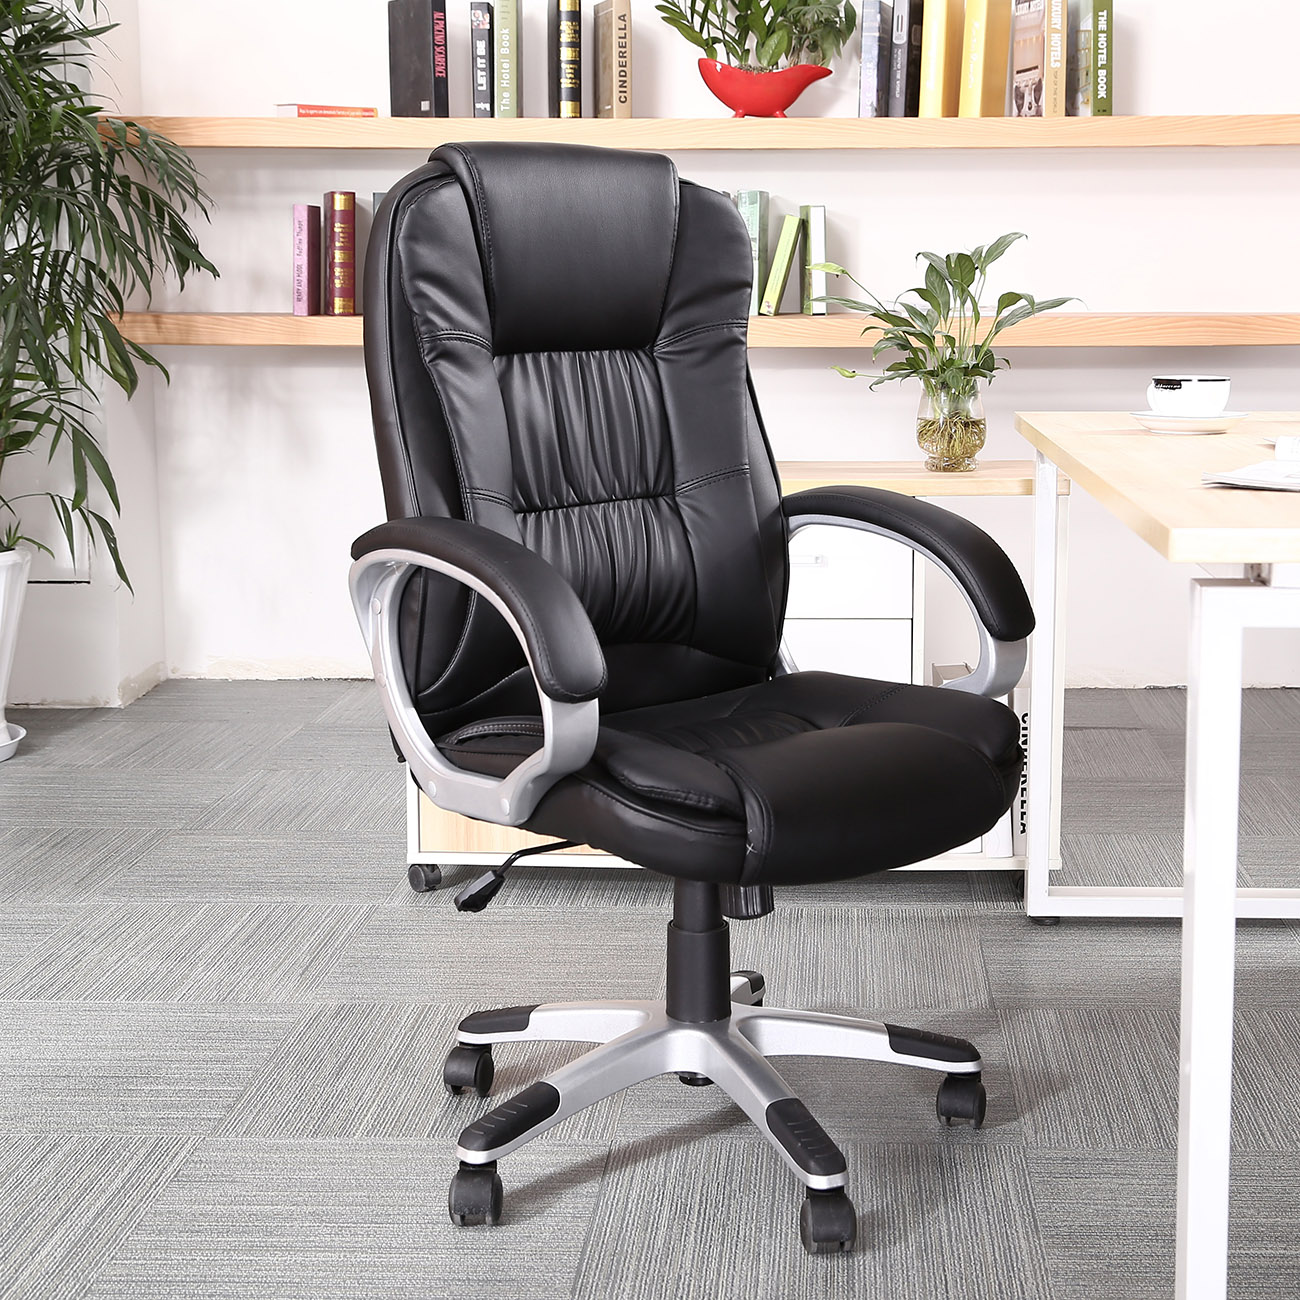 Belleze High Back Executive PU Leather Padded Manager's Office Chair (Black)